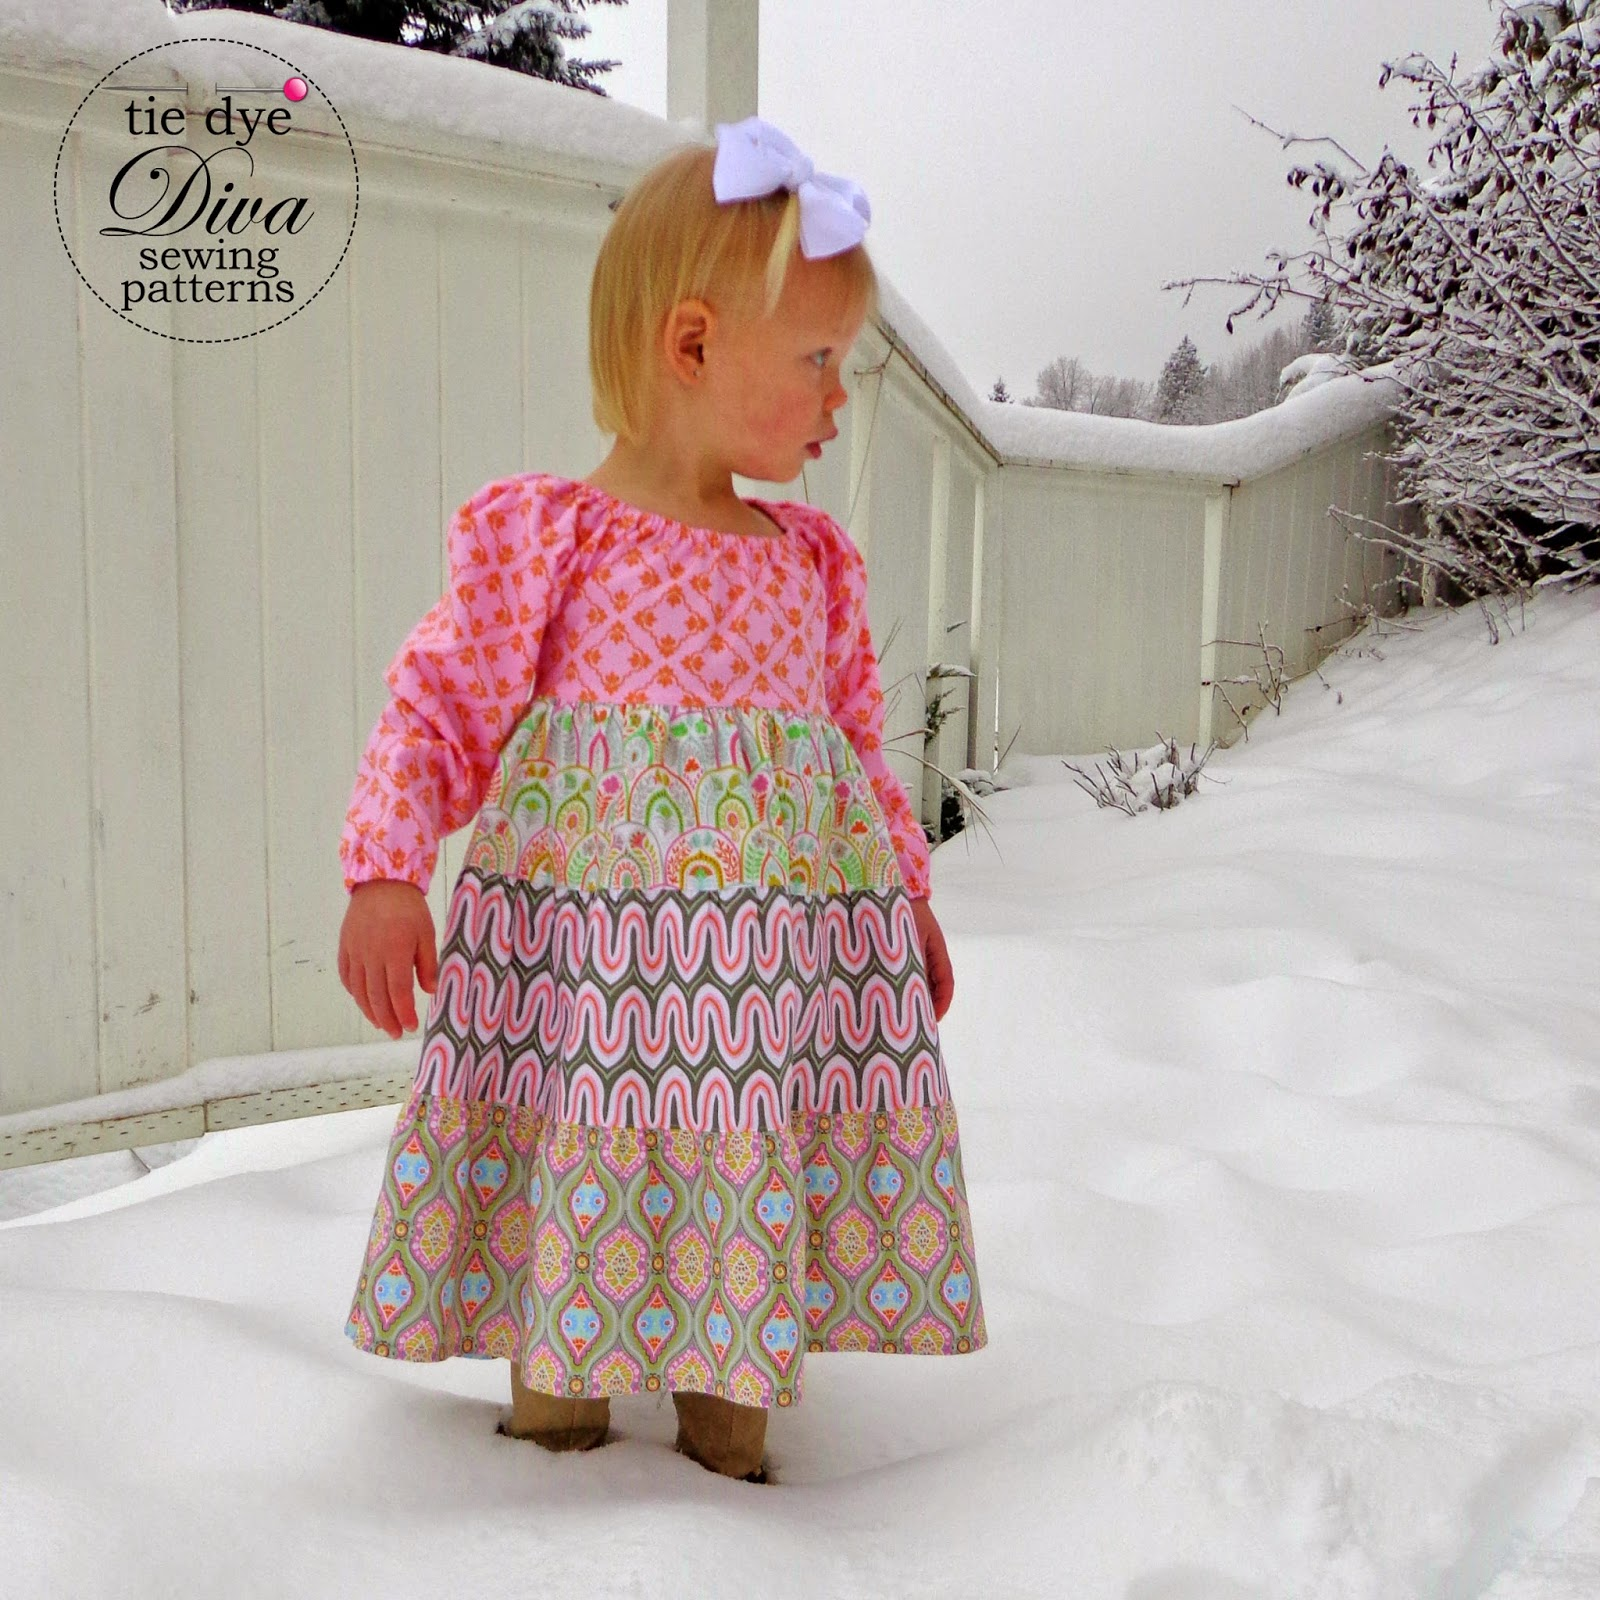 A Year of Dresses Belle Dress for Winter Tie Dye Diva Patterns Blog